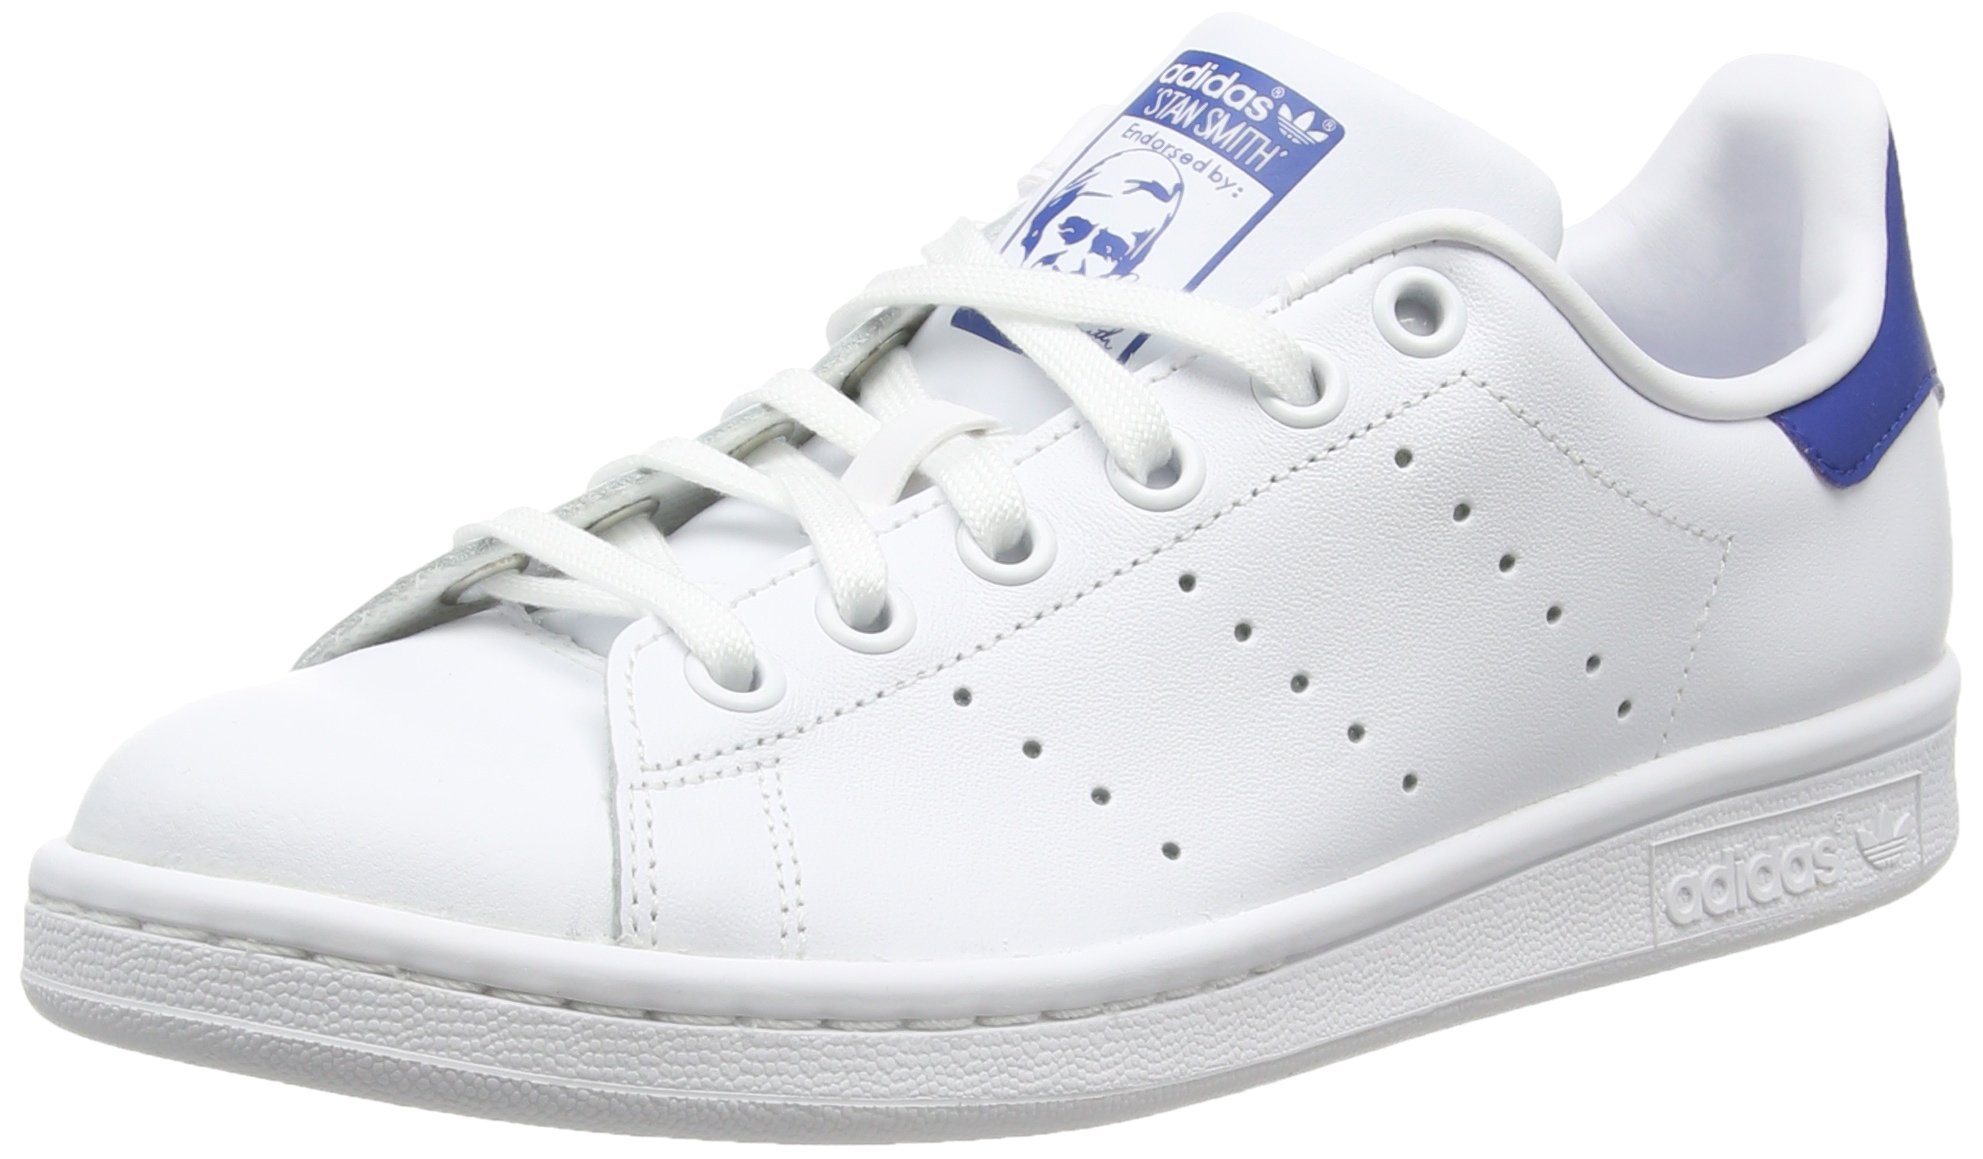 adidas Originals Stan Smith J White/Blue Leather 5.5 M US Big Kid